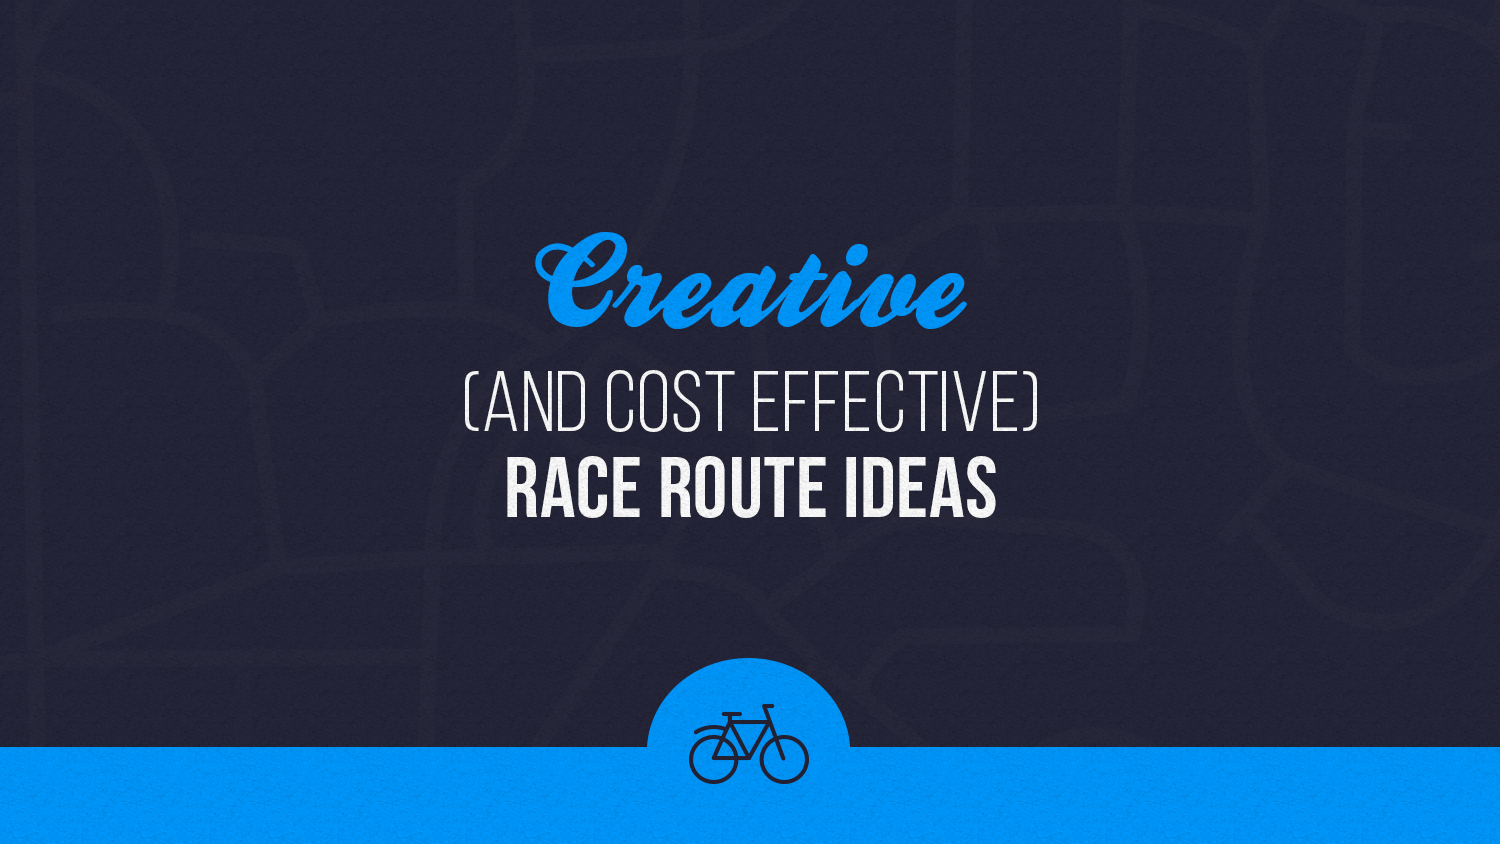 Creative and cost effective race route ideas graphic with bicycle icon